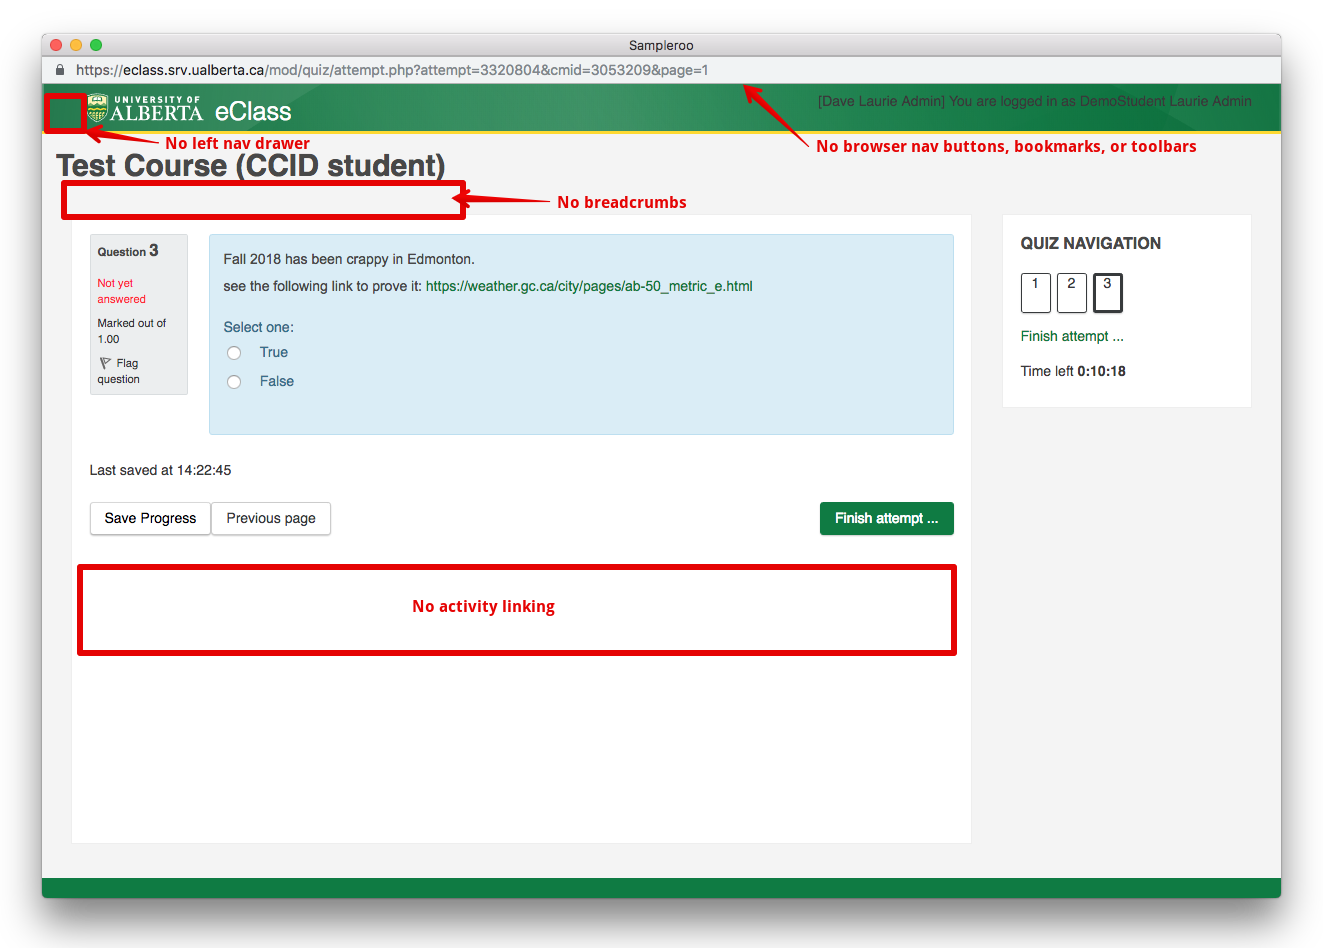 Security Features for Delivering eClass Quizzes - Powered by